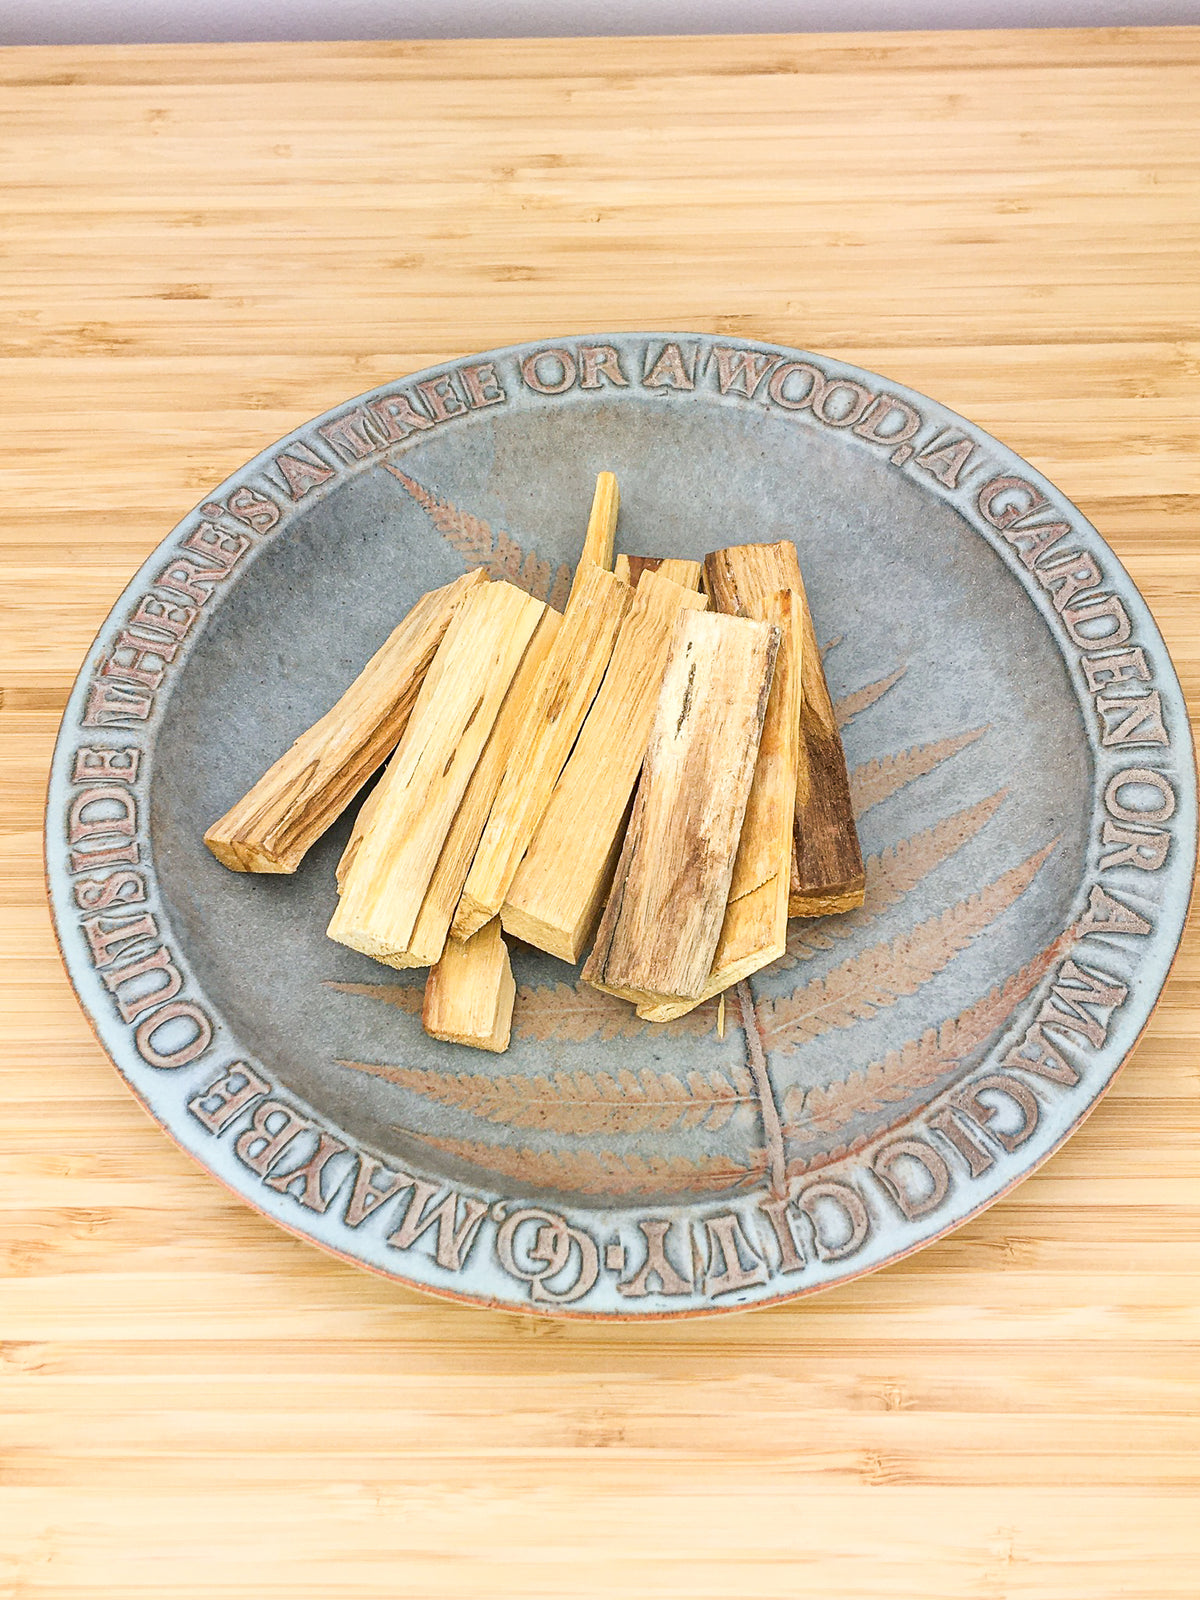 Stick sod Palo Santo (an aromatic wood) on a ceramic plate